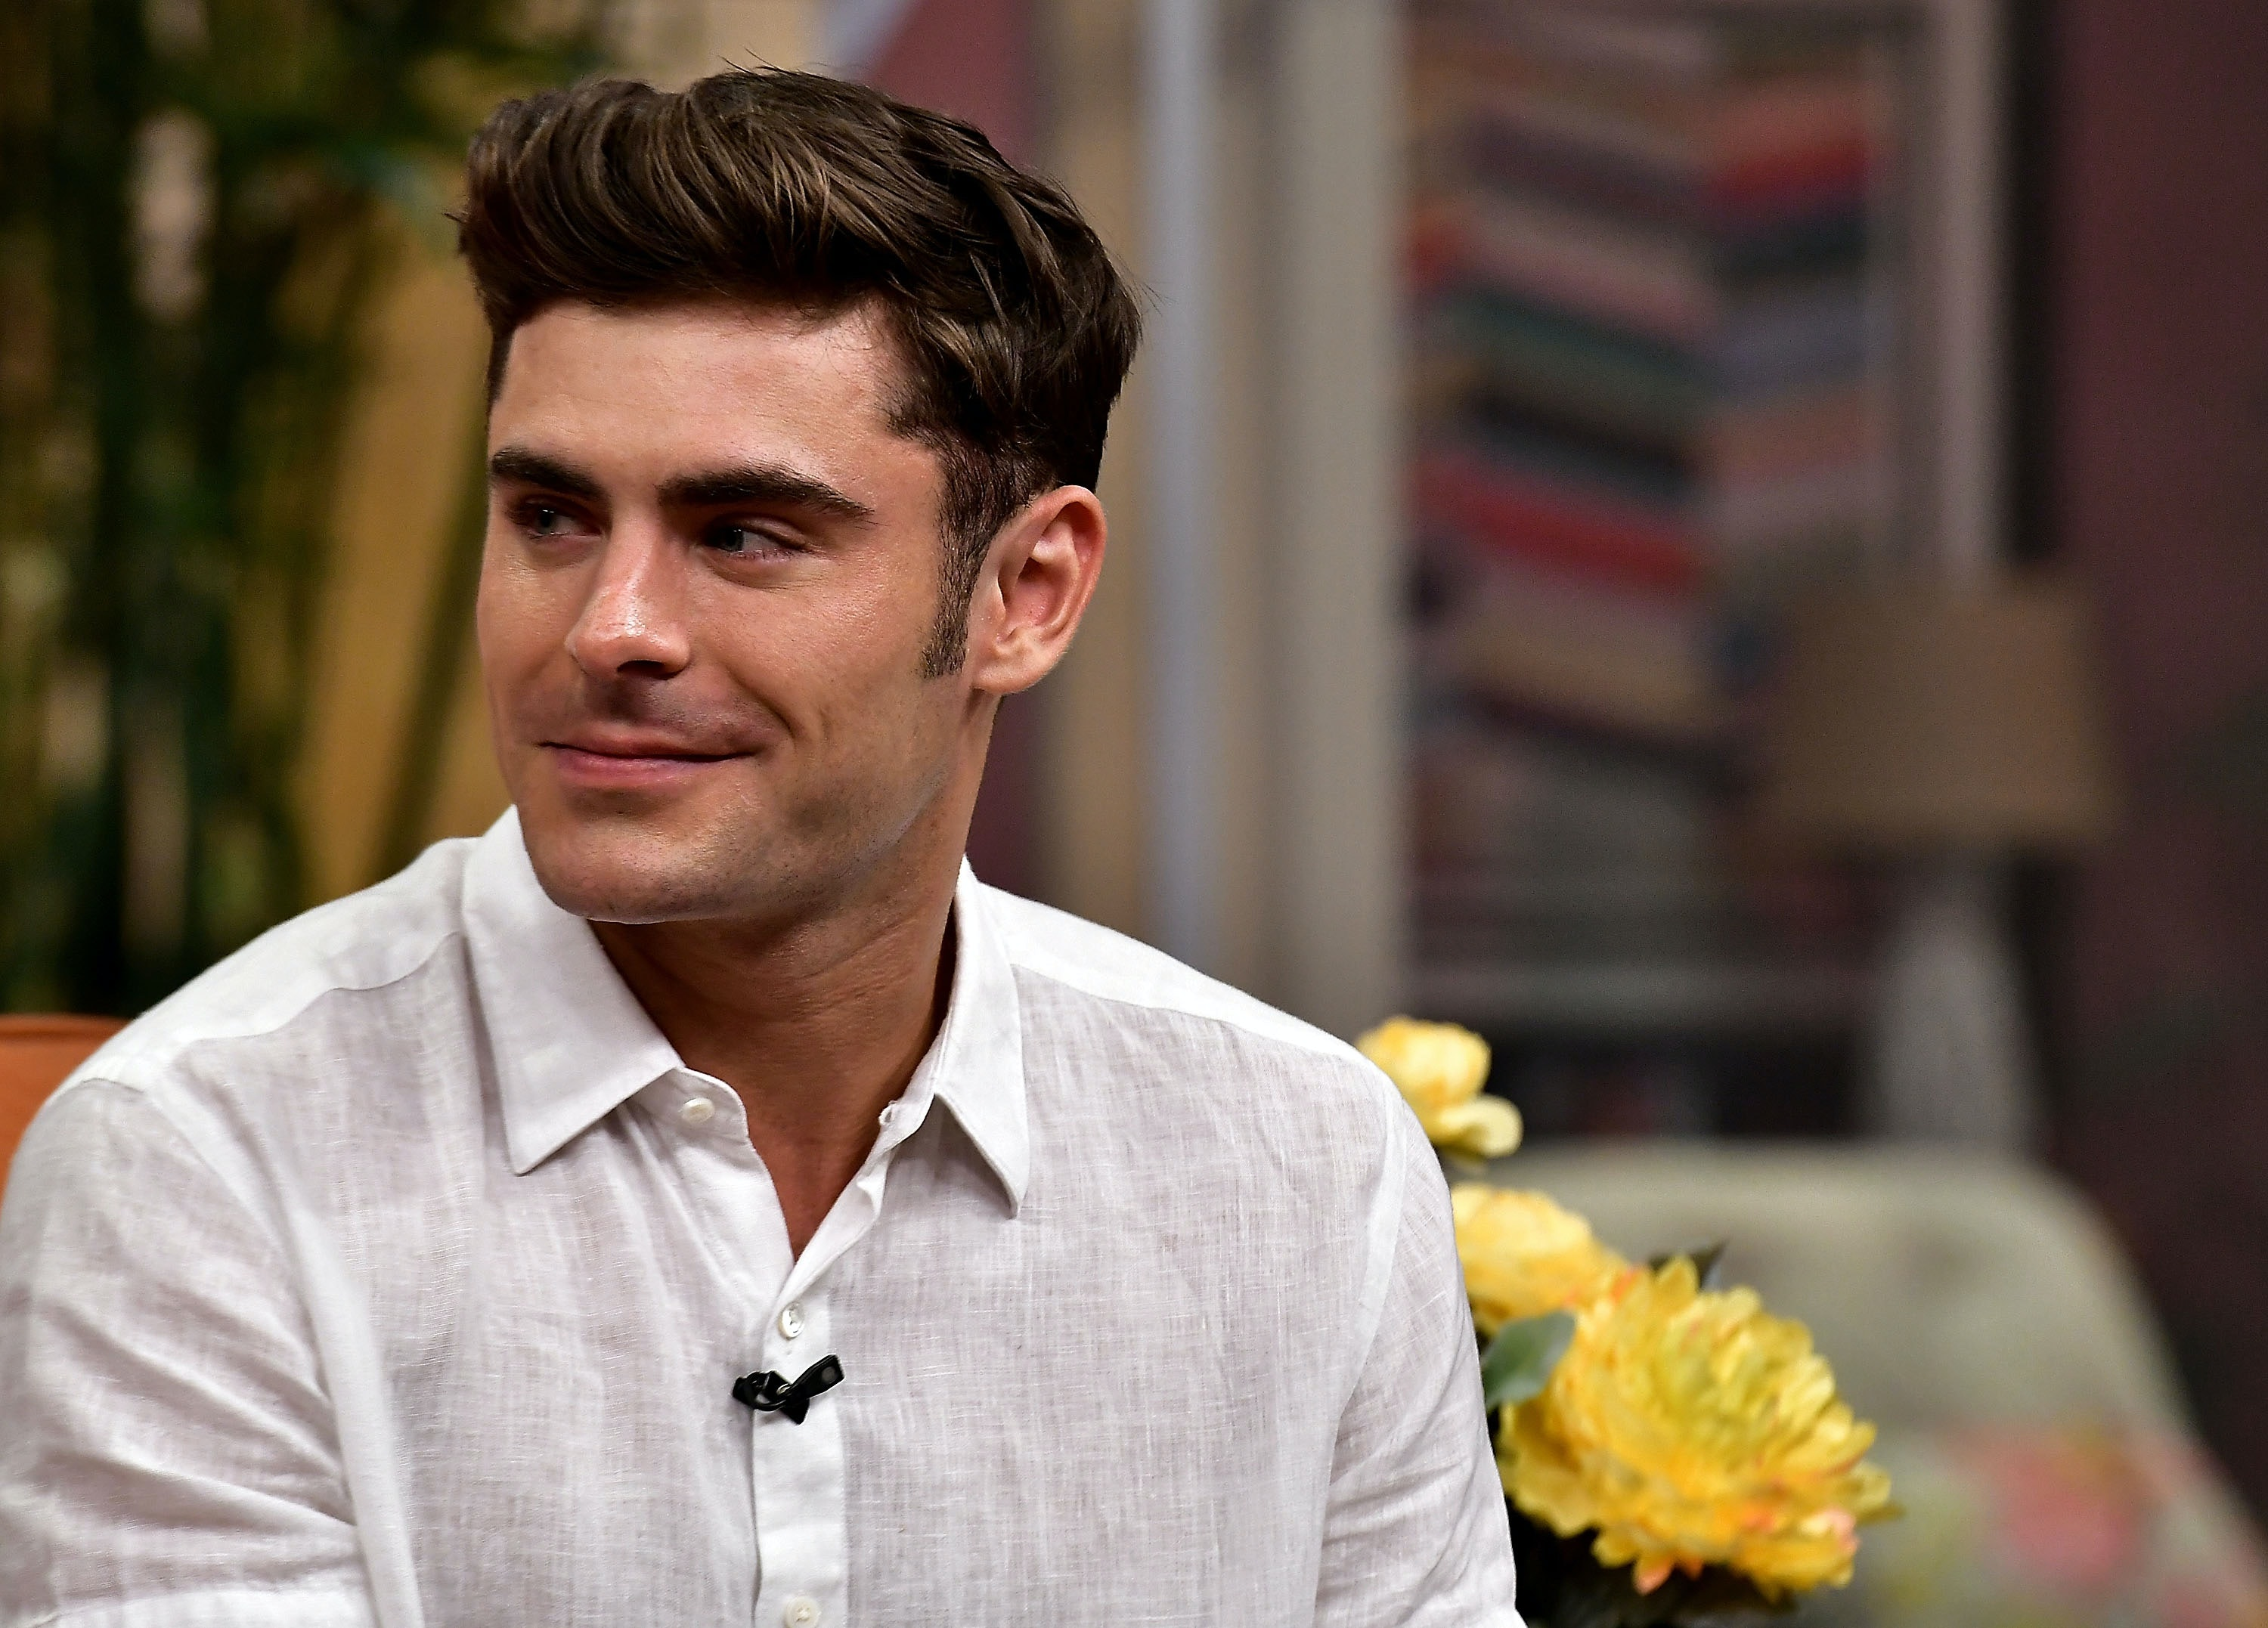 Whos zac efron dating now 2019